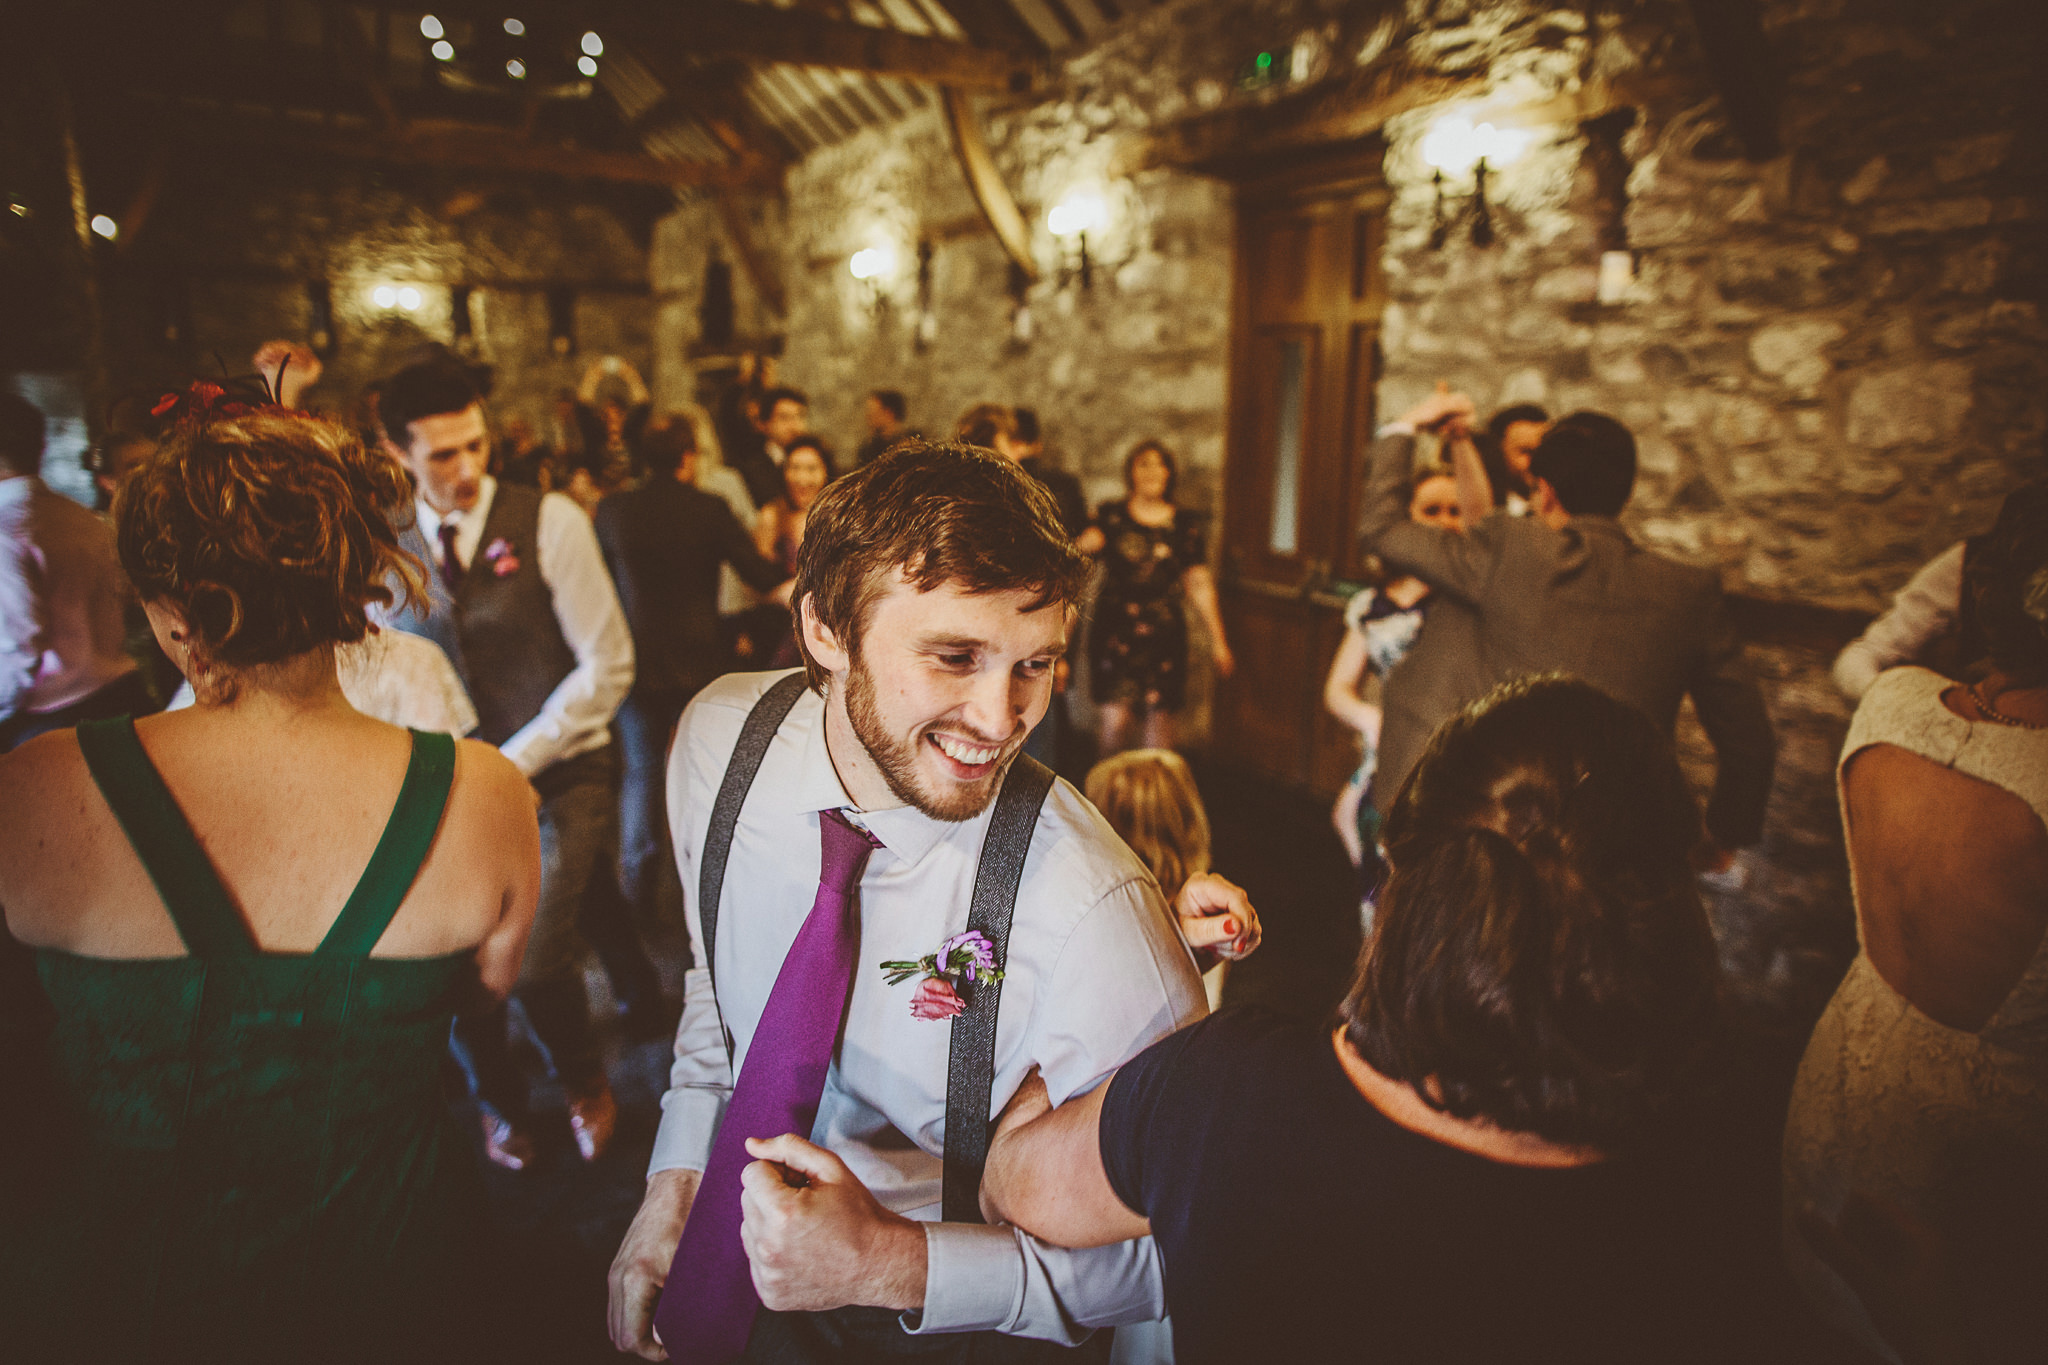 plas-isaf-corwen-north wales wedding-photography-photographer-91084